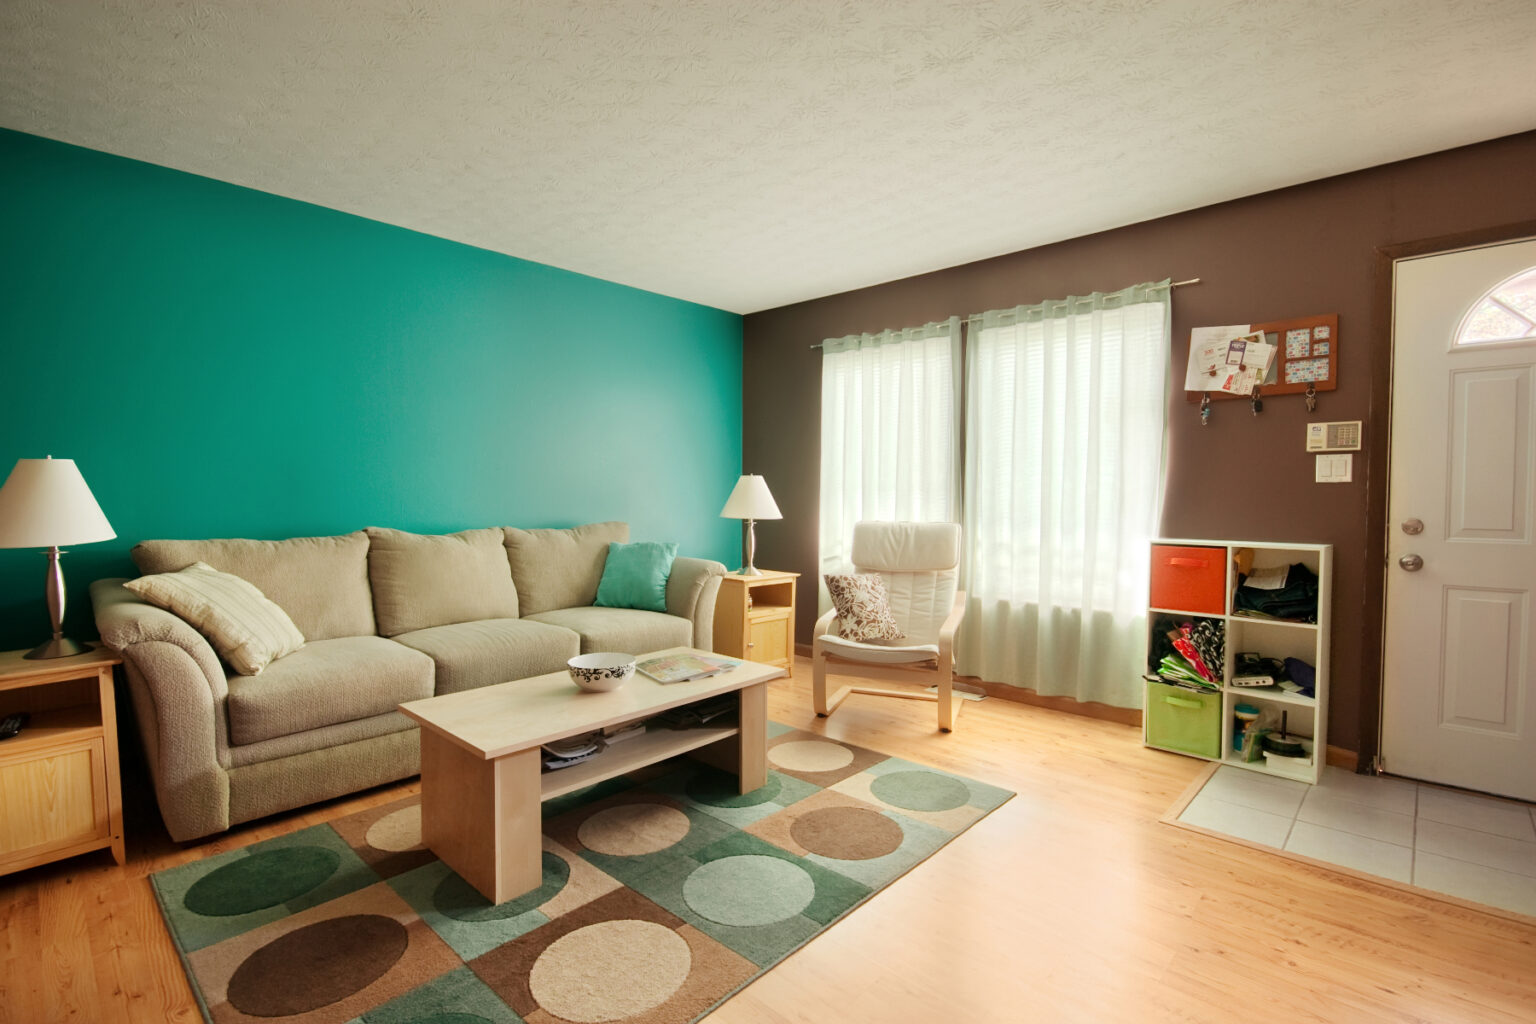 Living Room with Teal Walls and white curtains